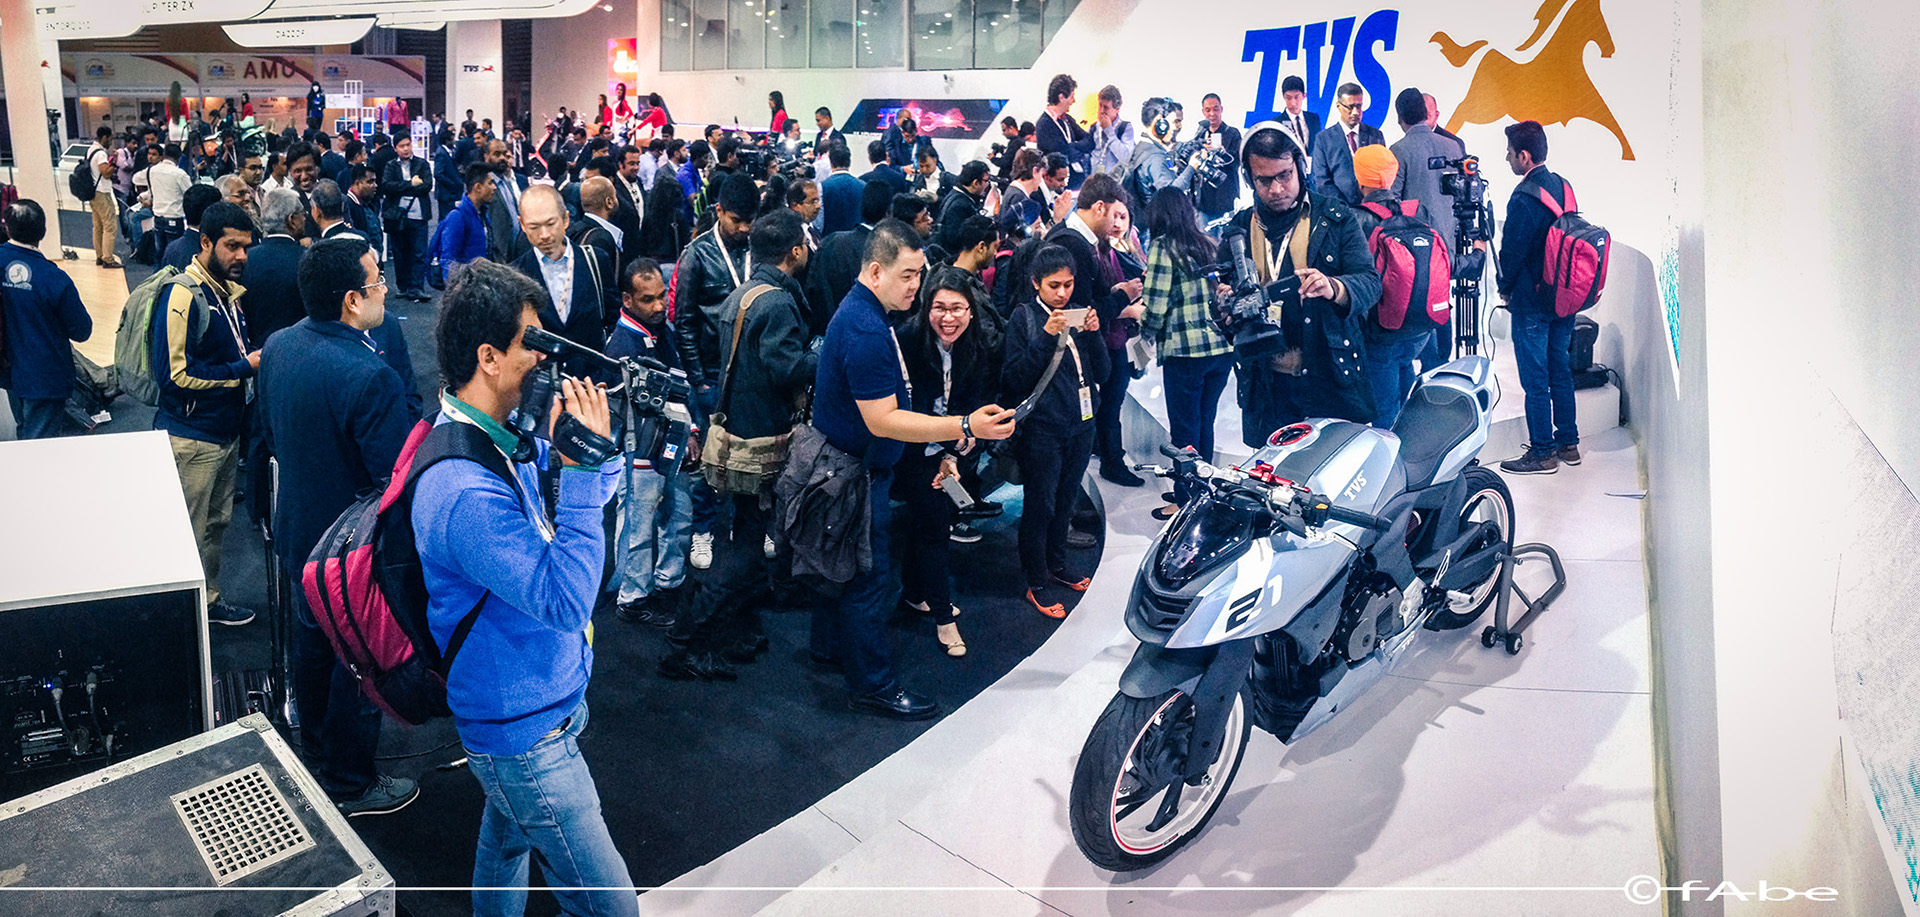 tvs motor research project Essays - largest database of quality sample essays and research papers on tvs motors project conclusion.